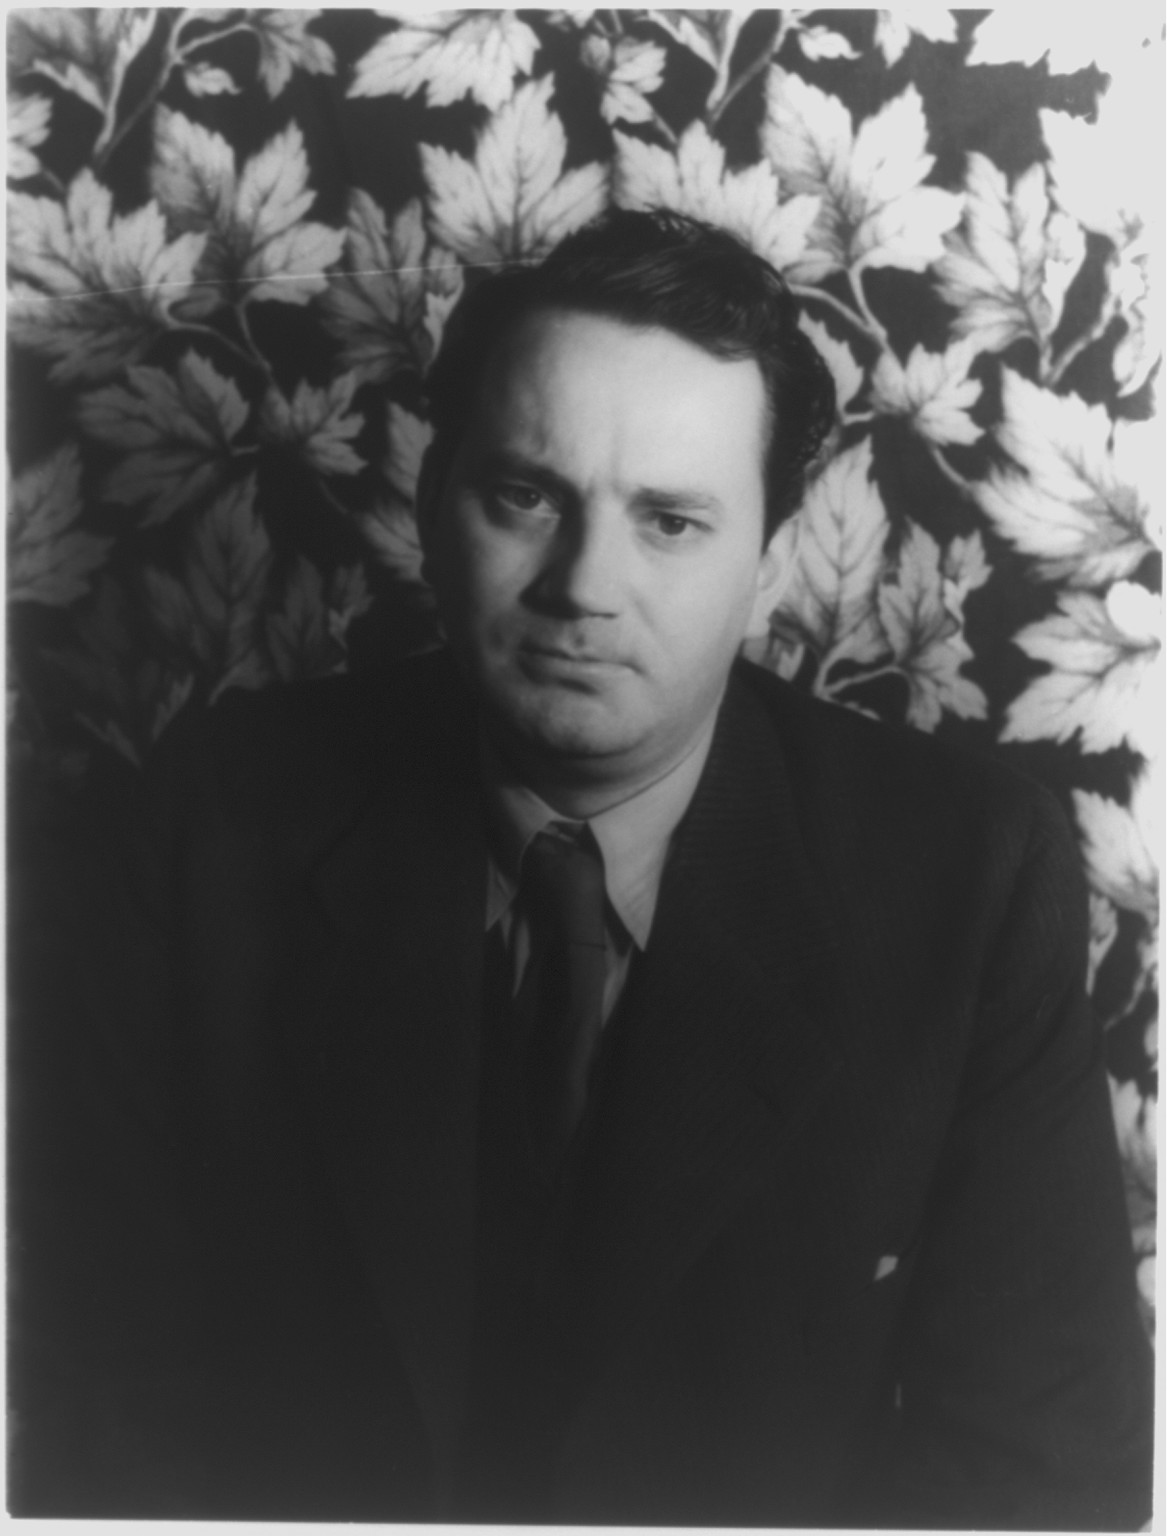 an analysis of what is man by thomas wolfe Essays and criticism on thomas wolfe, including the works look homeward, angel, of time and the river, the web and the rock, you can't go home again - critical survey of long fiction.